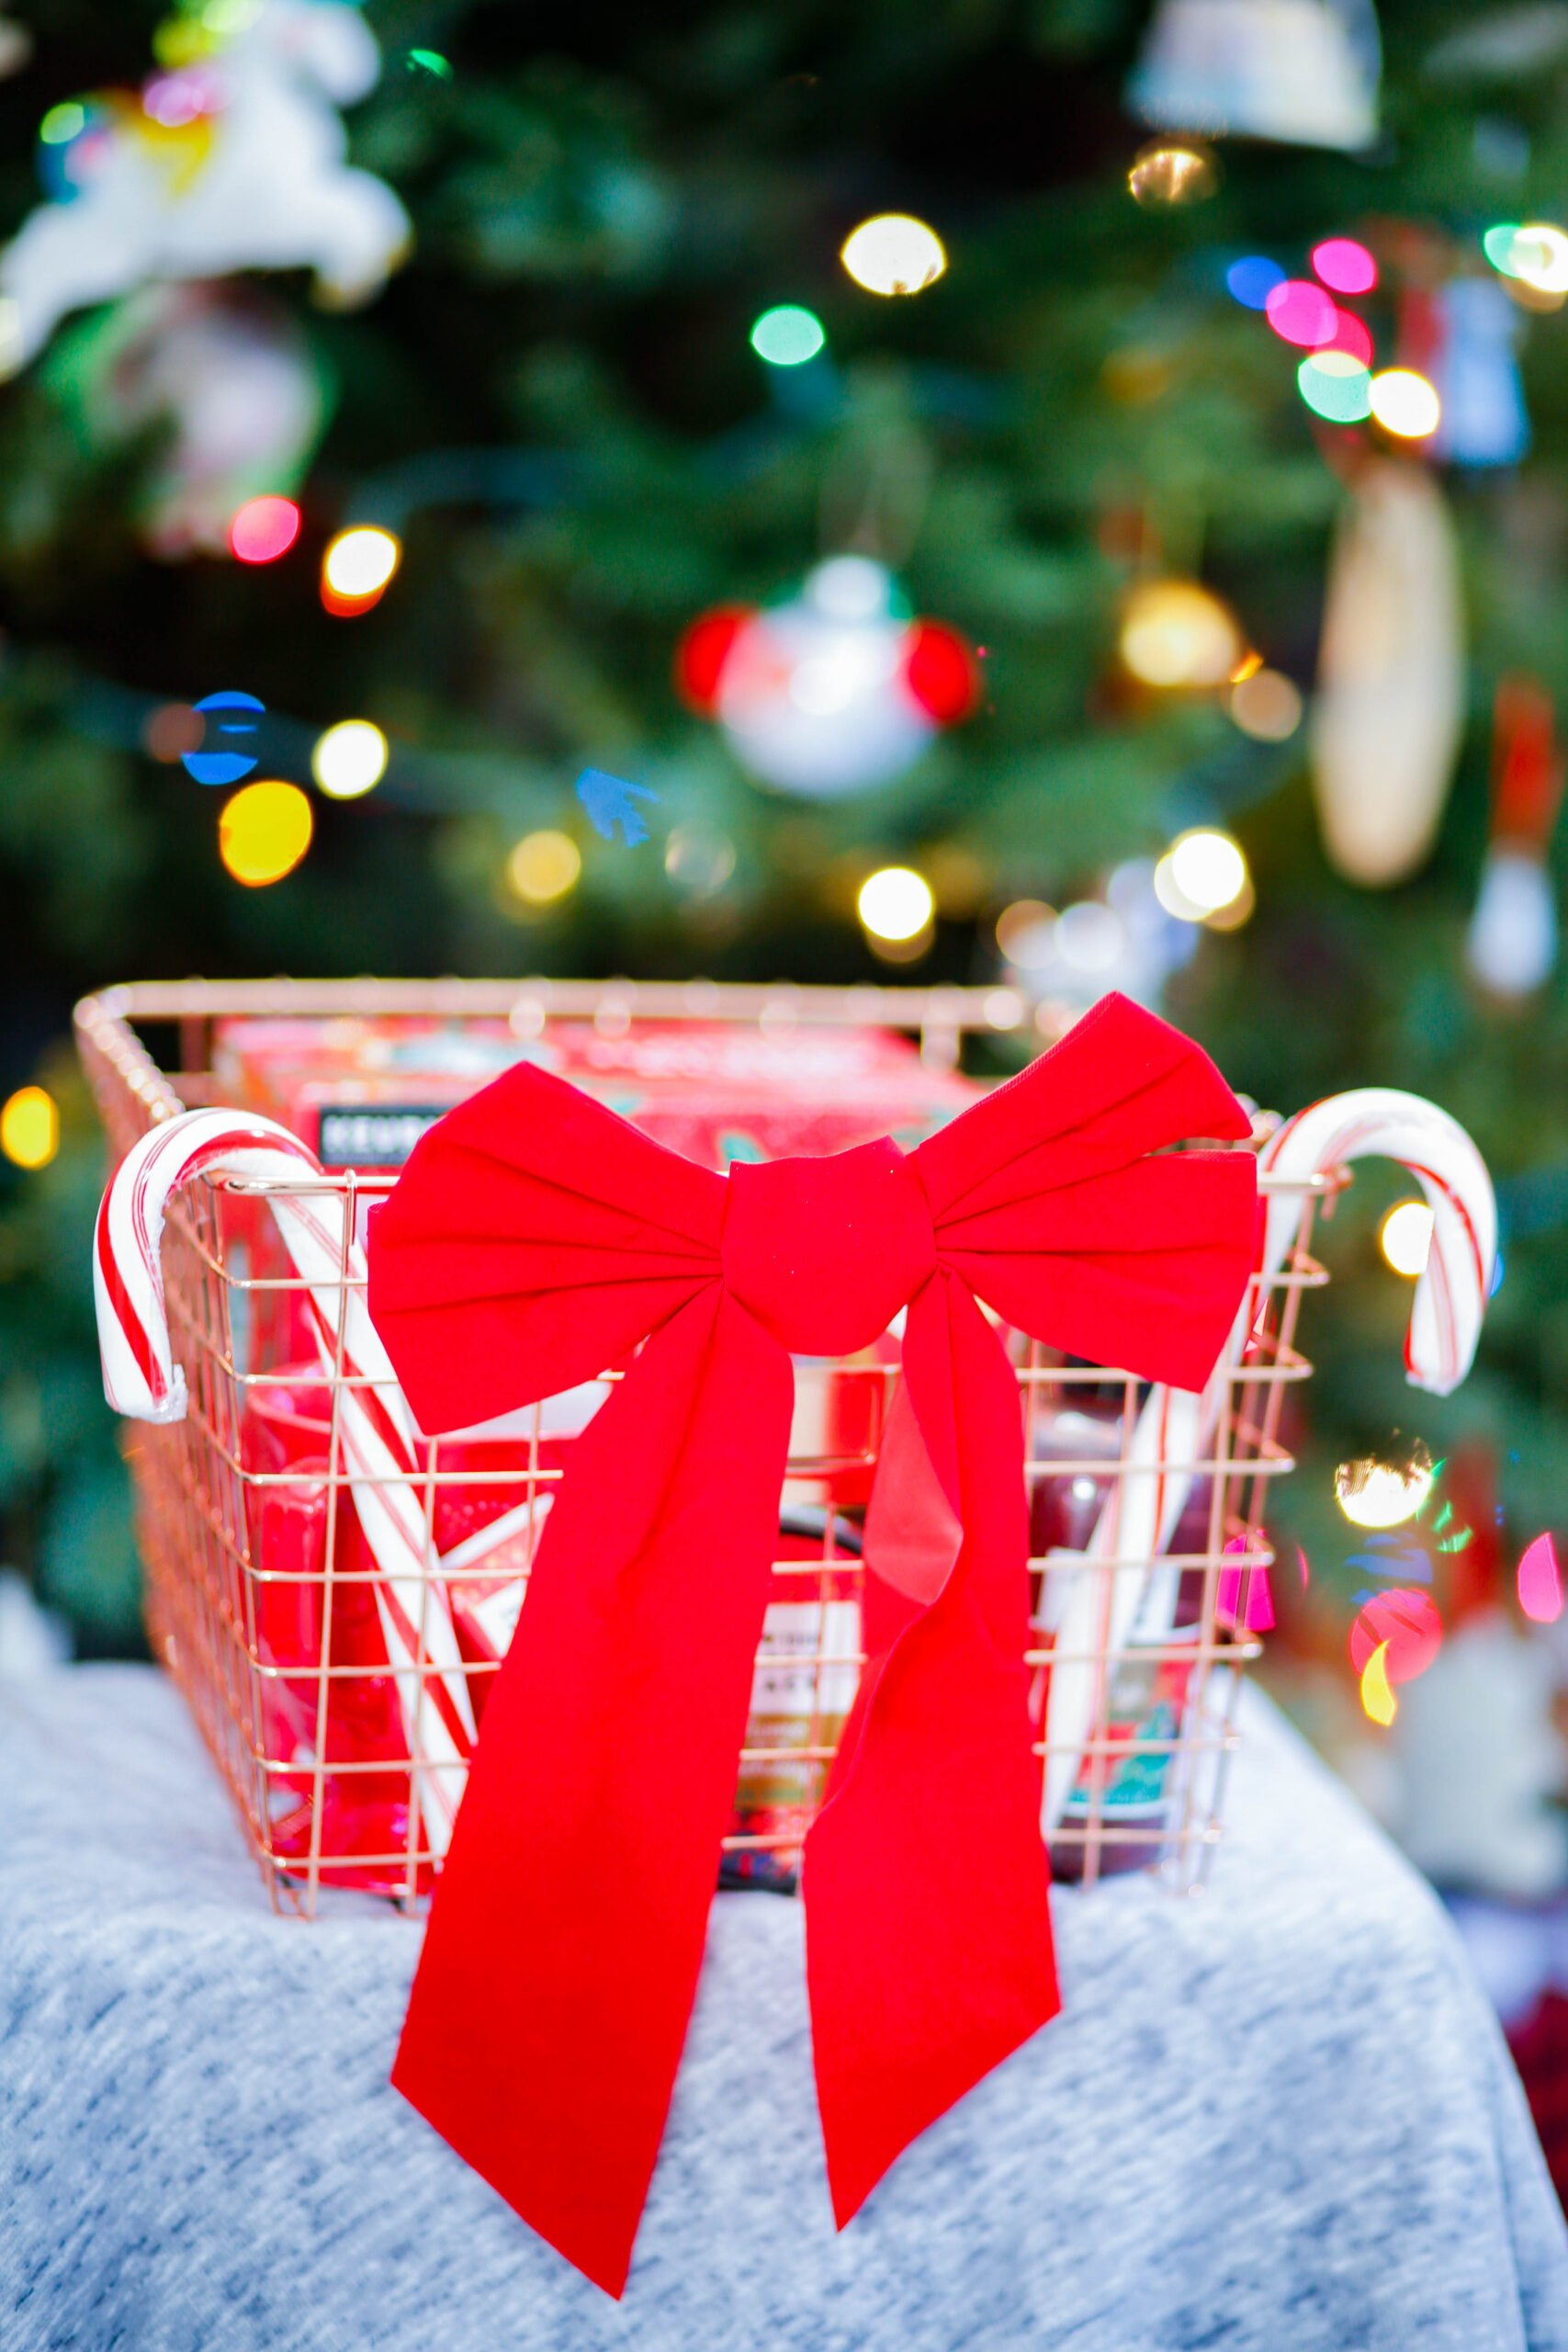 These are some GREAT christmas gift ideas for teachers that are reasonable prices!